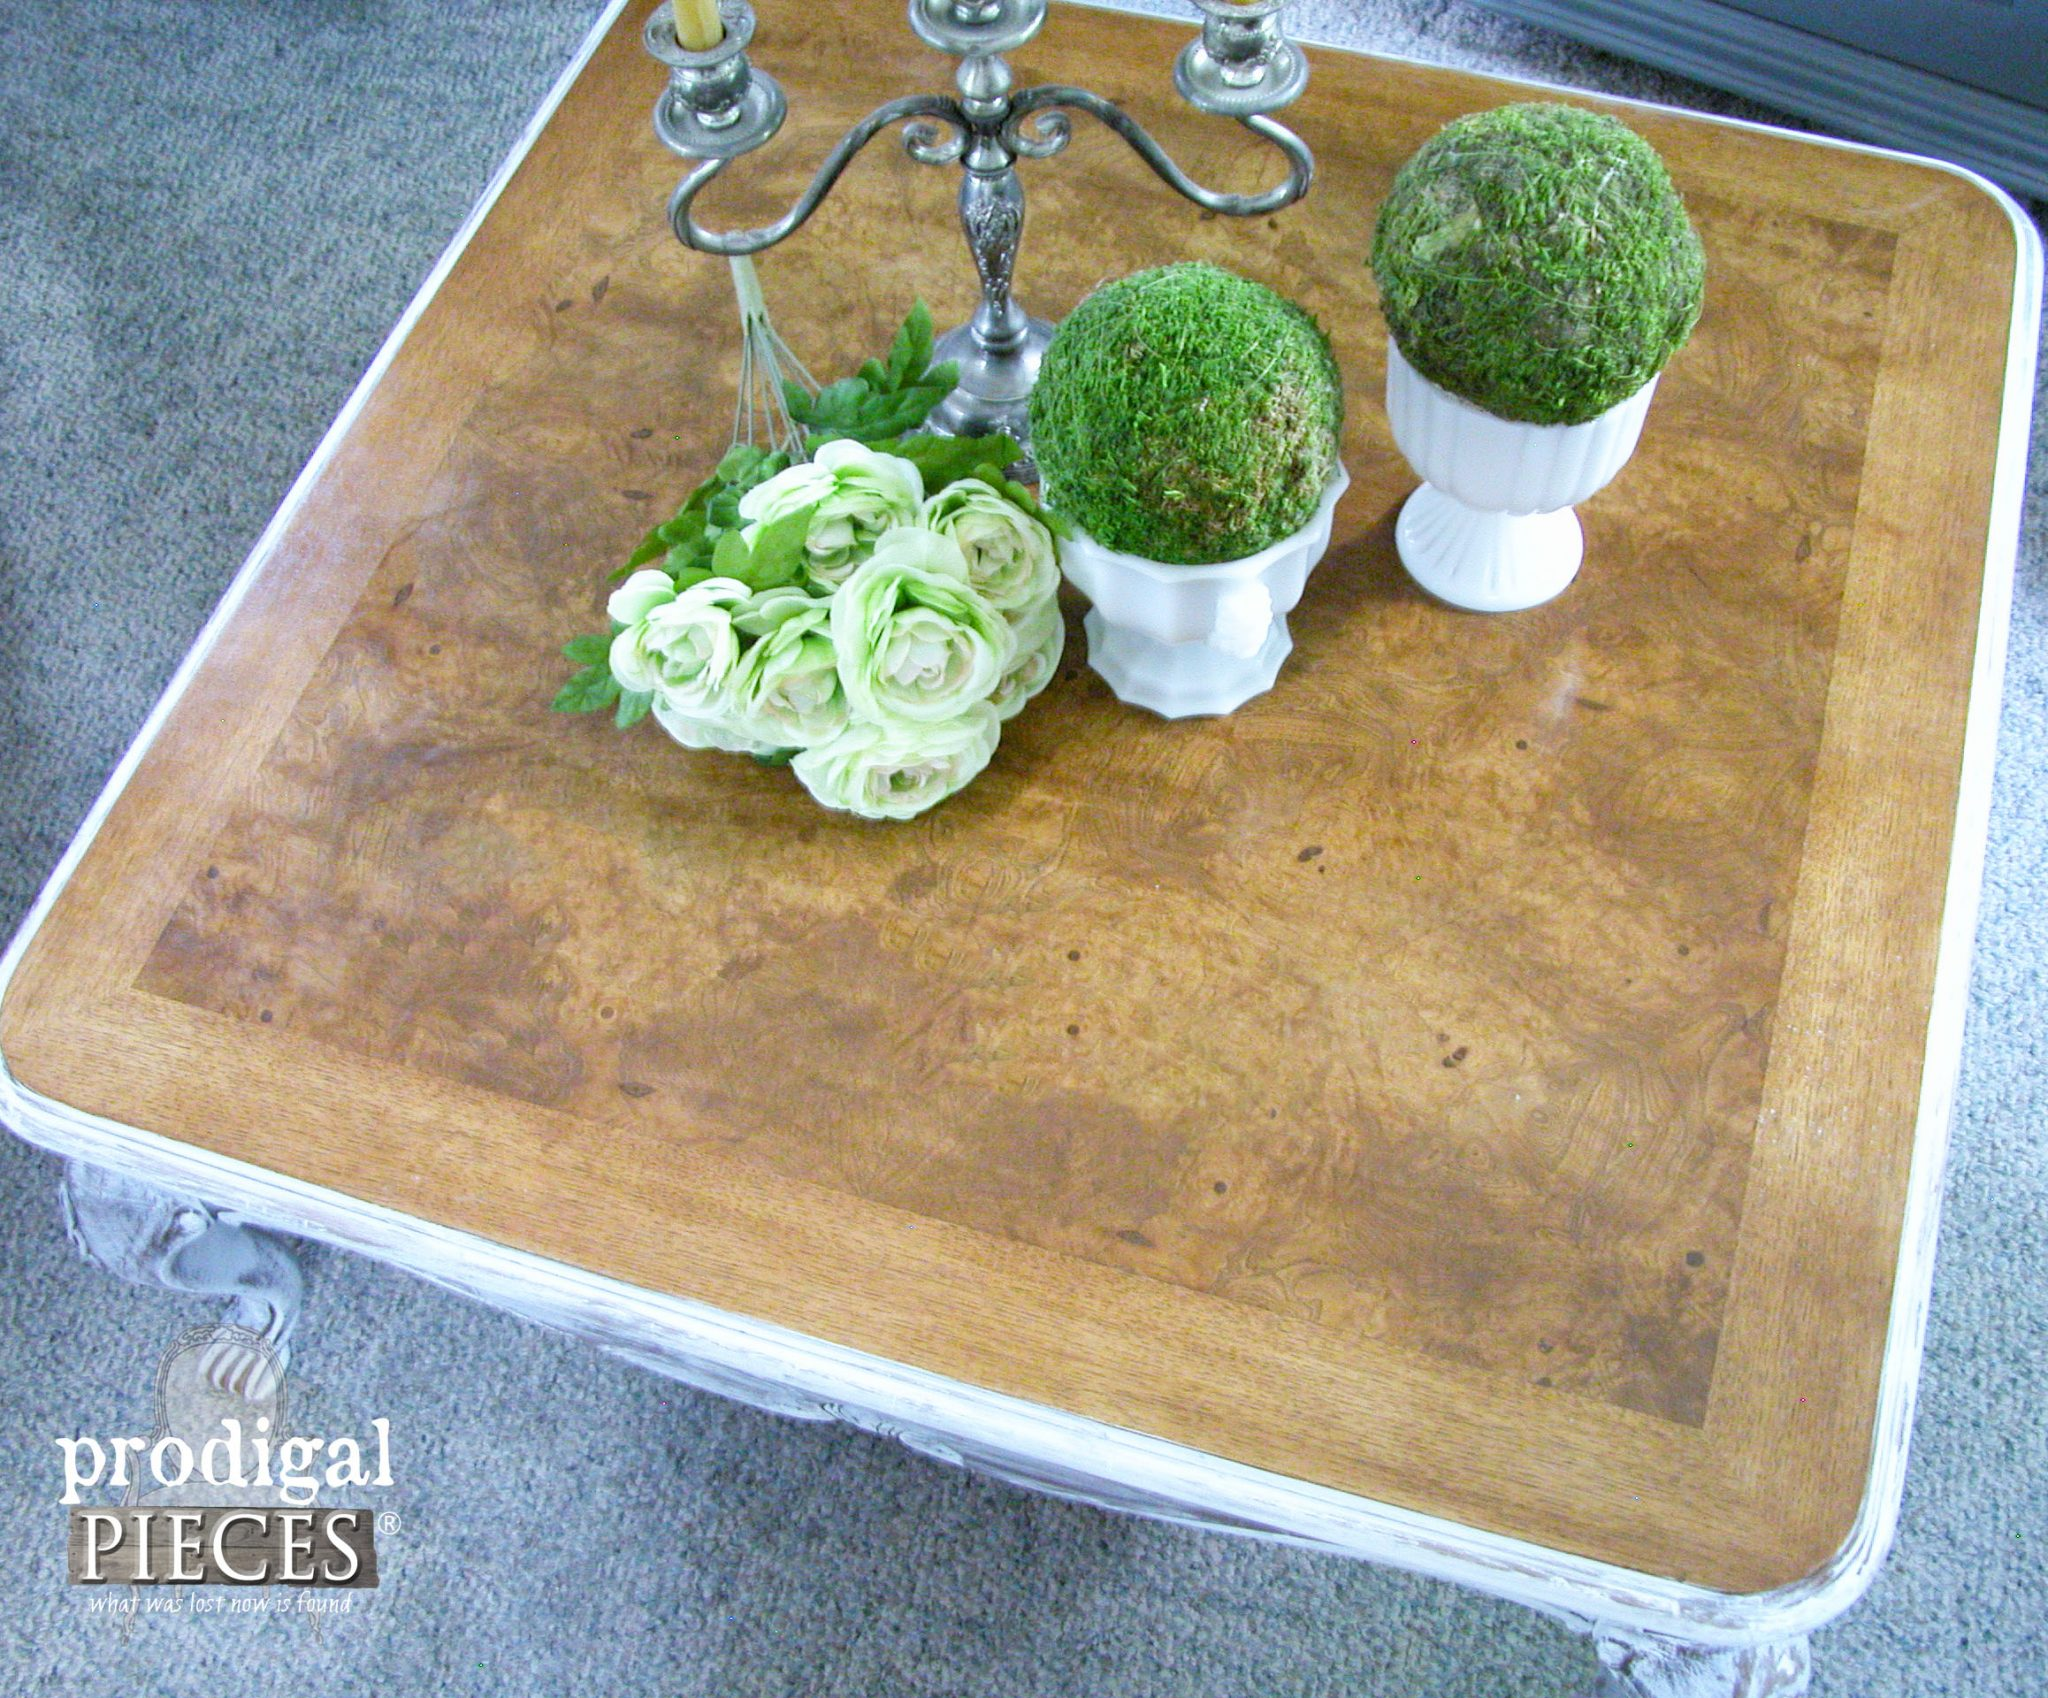 Burled Wood French Country Coffee Table by Prodigal Pieces | prodigalpieces.com